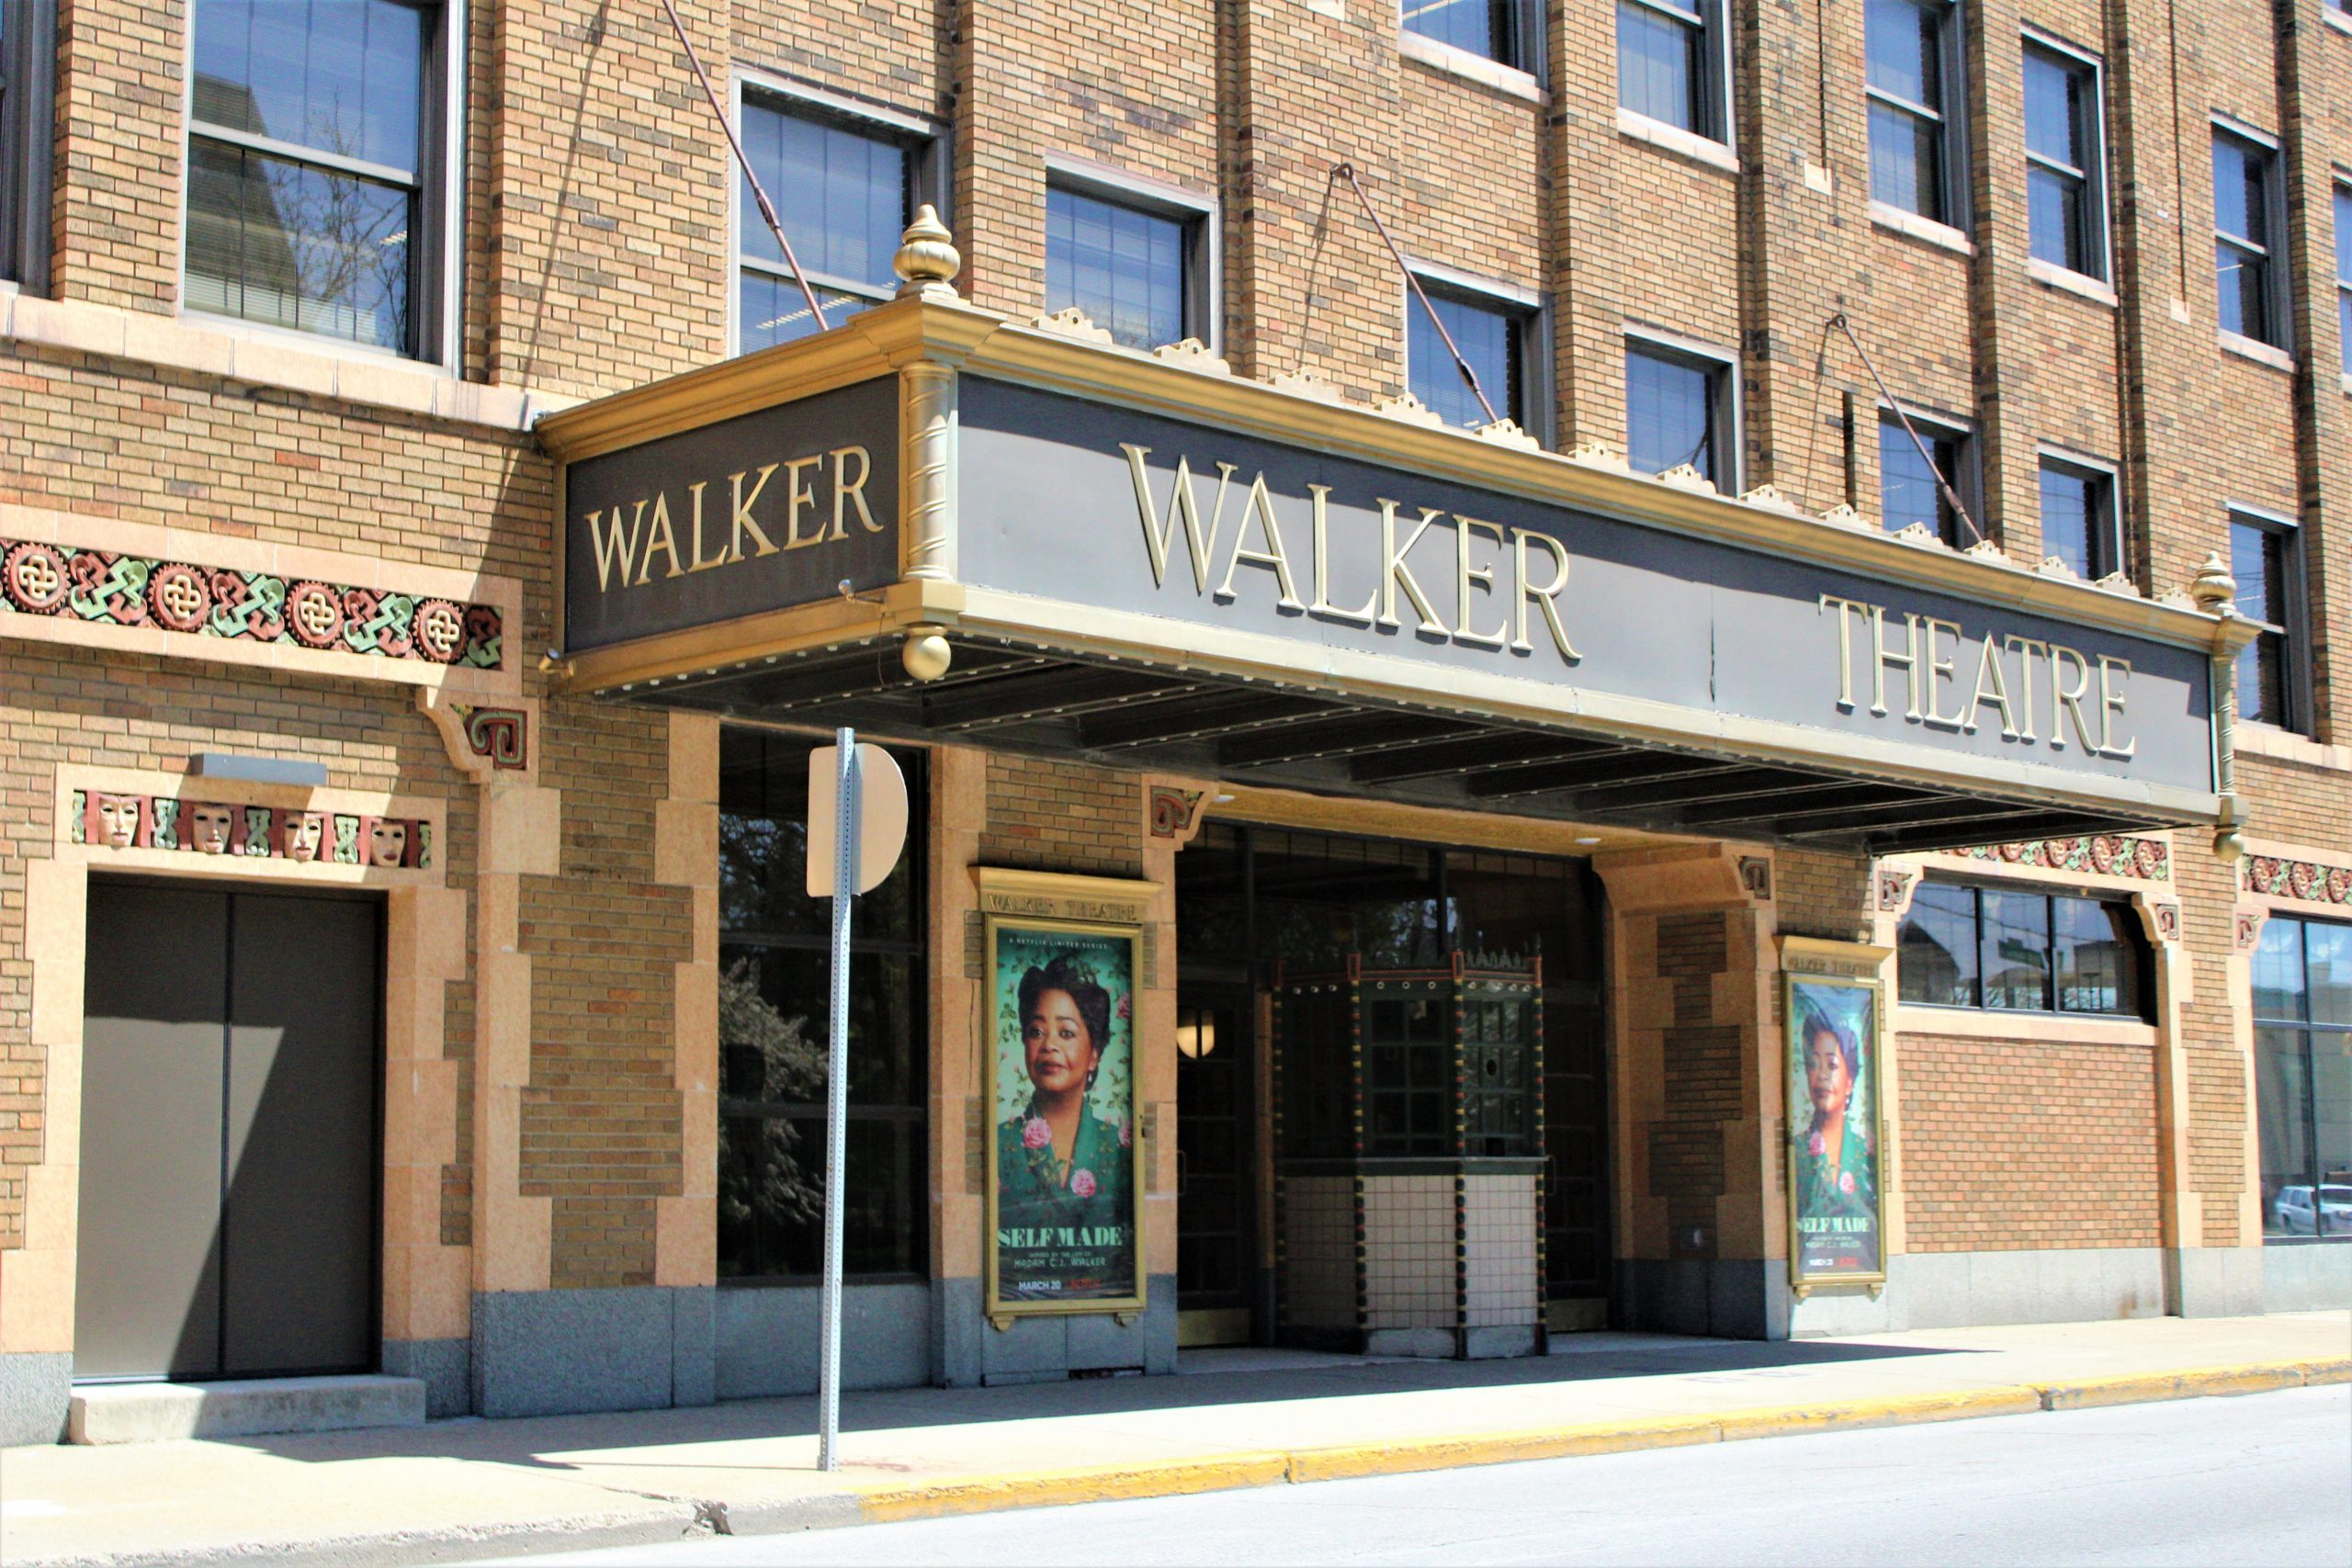 Indiana Ave & Ransom Place - Walker Theatre